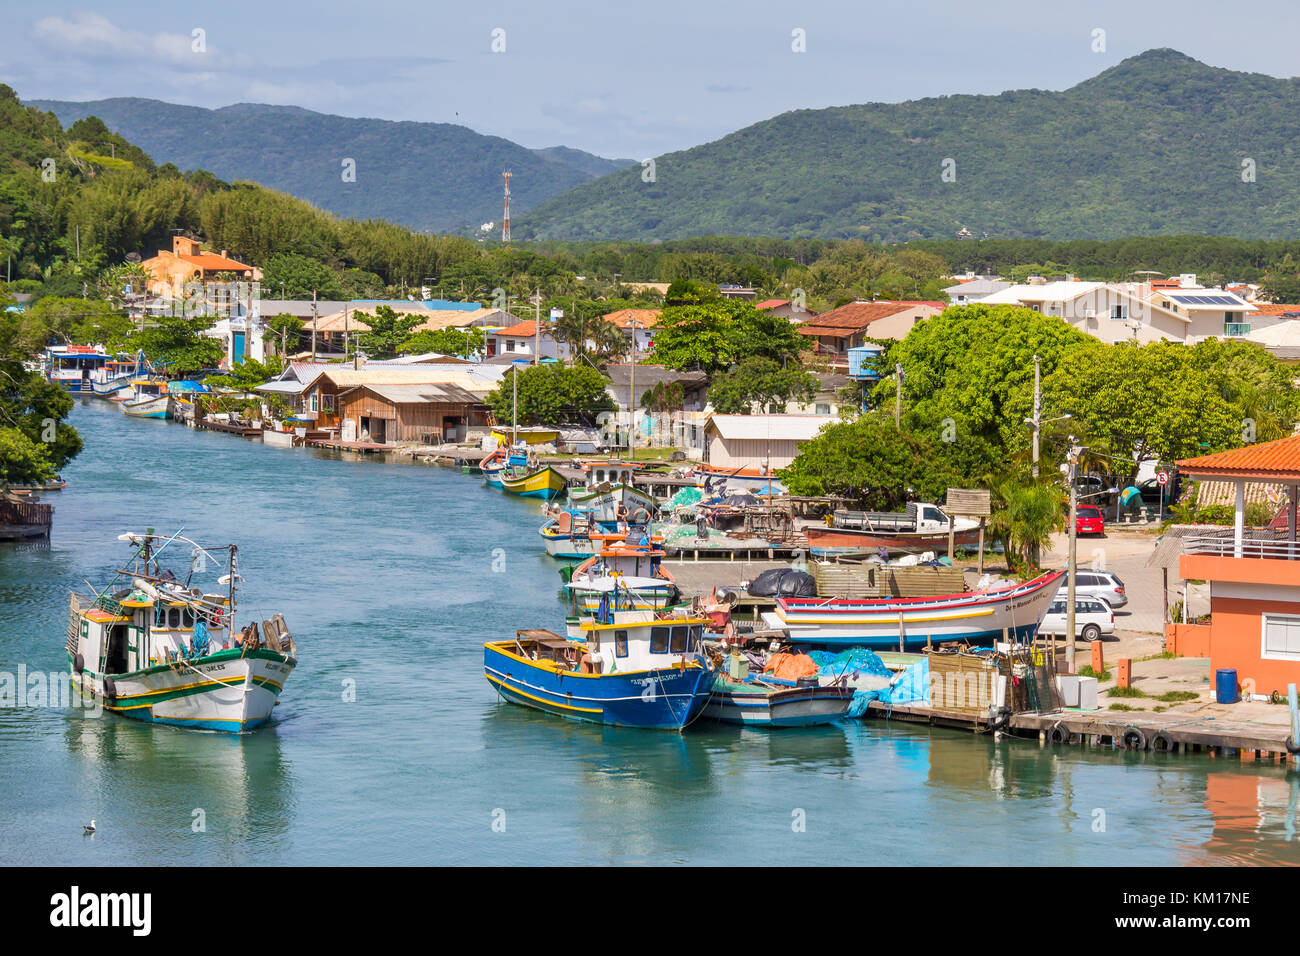 Fisher boats in the canal which connects the ocean and the lagoon at Barra da Lagoa | Florianópolis | Brazil - Stock Image